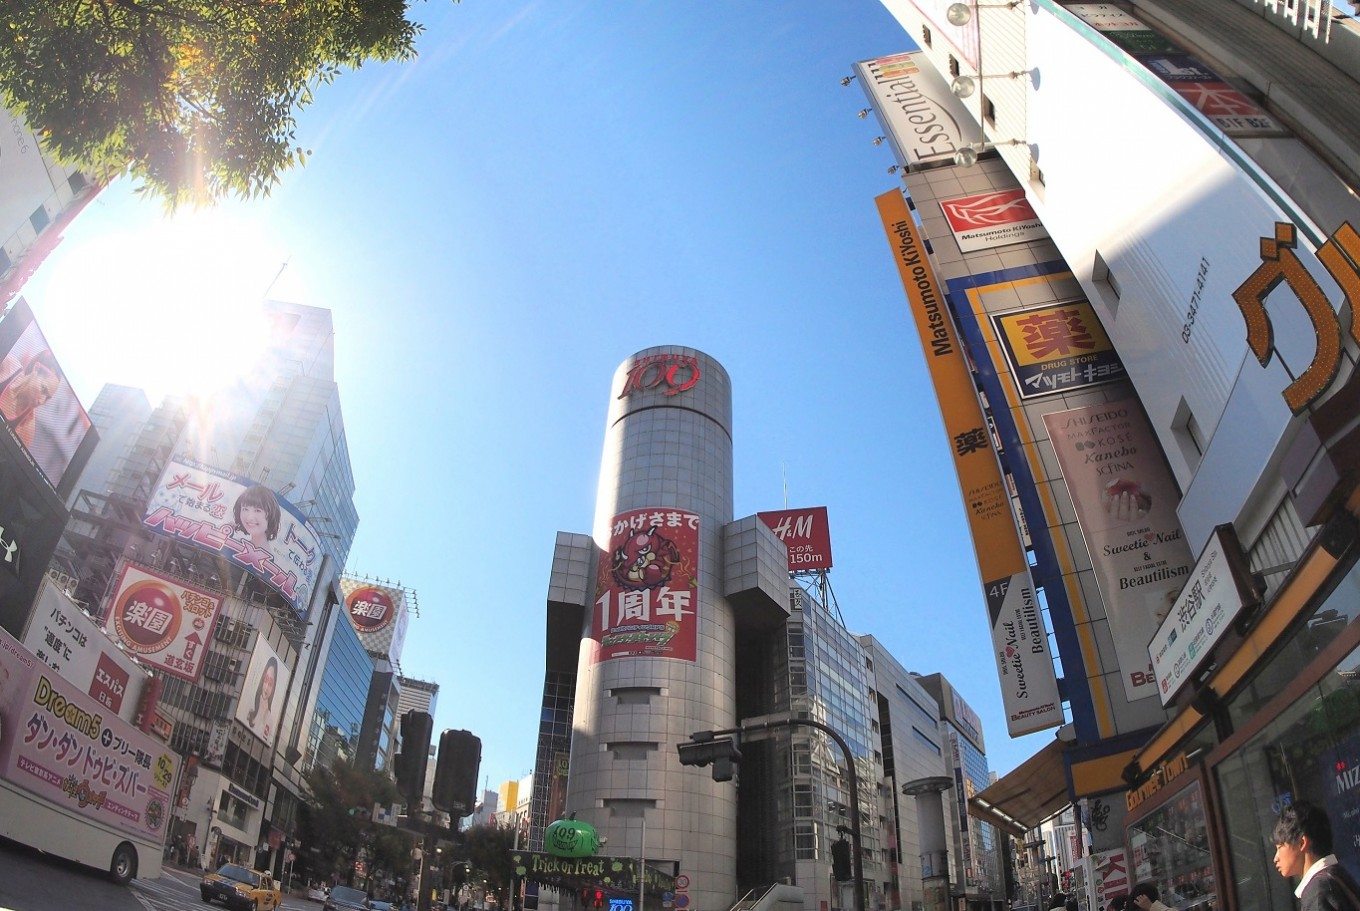 Seven must-visit places in Shibuya for first-timers